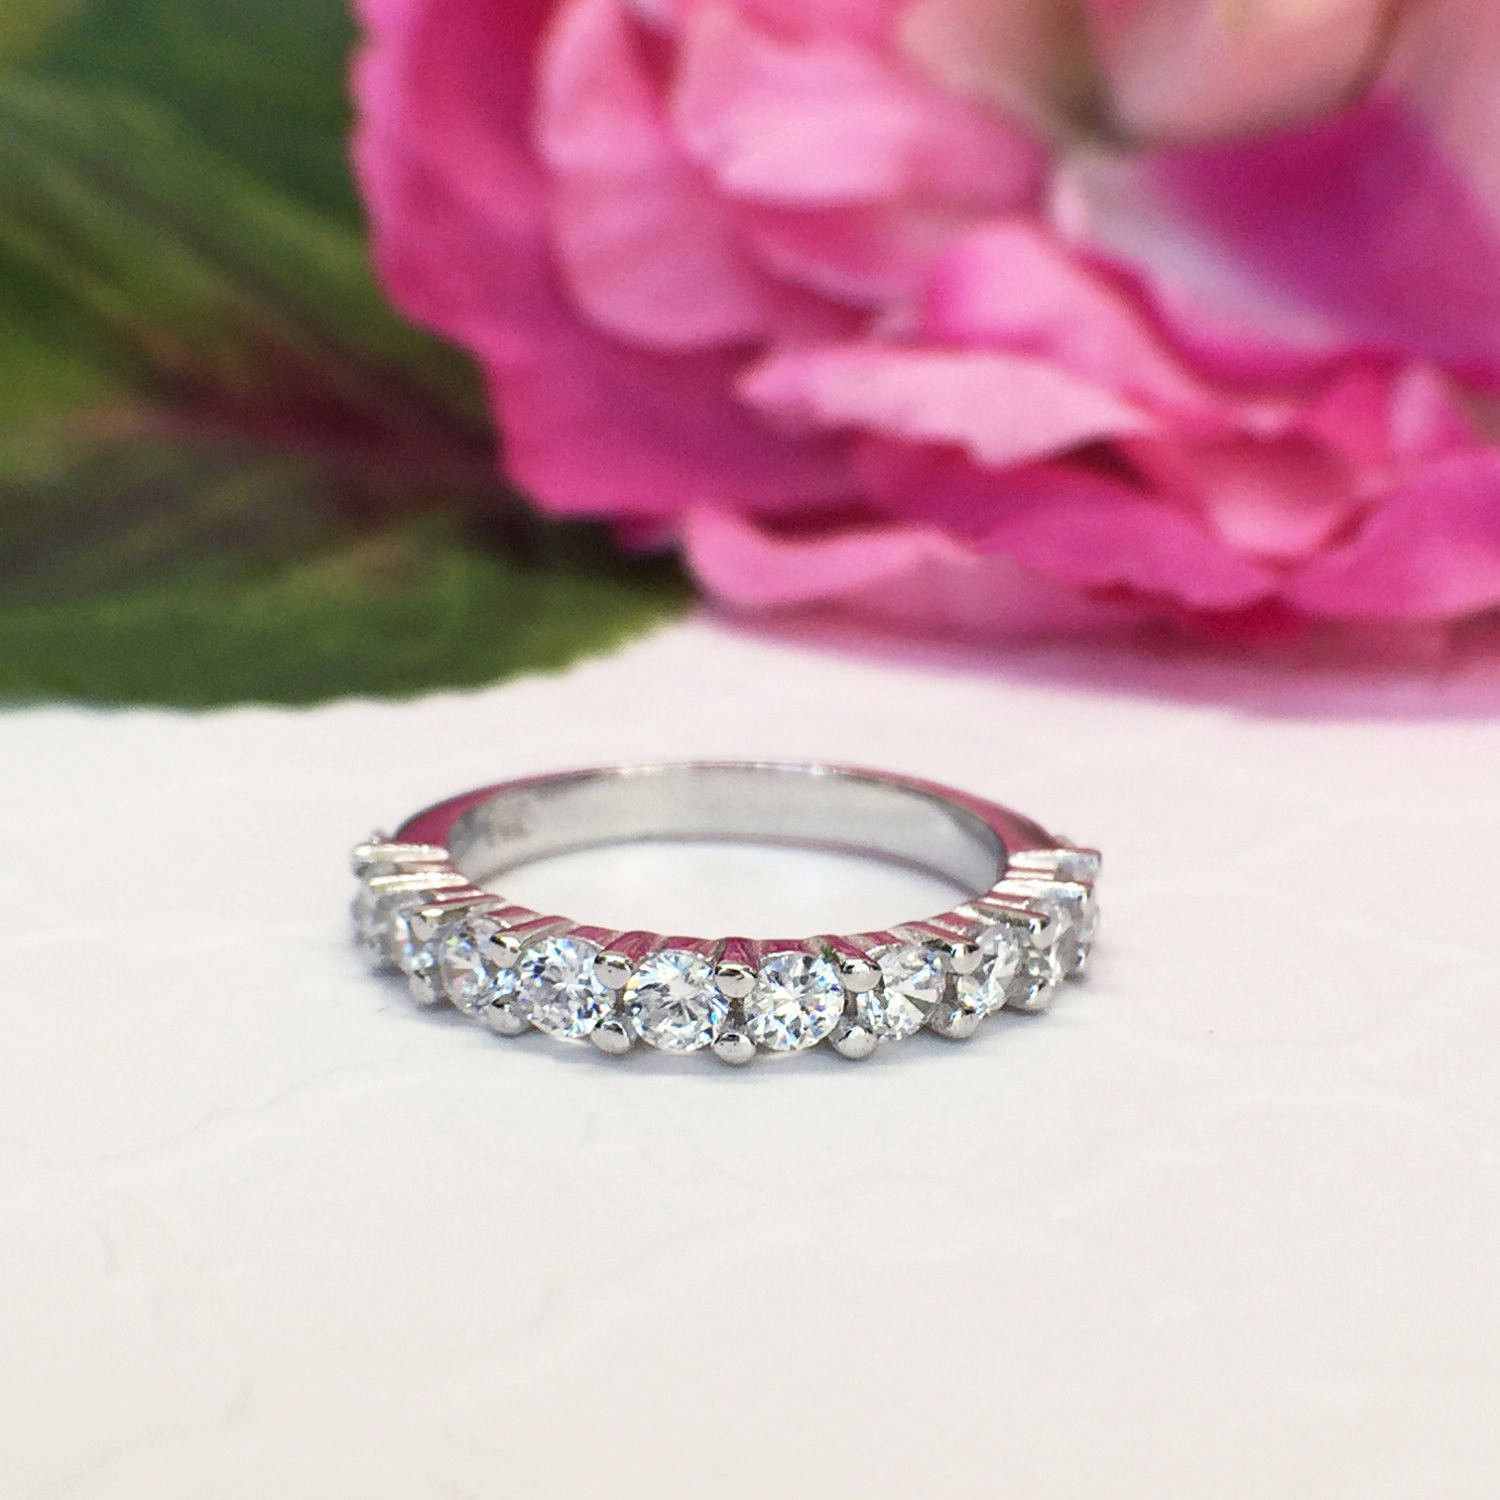 3/4 ctw 12 Stone Band   Products   Pinterest   Wedding!, Products ...